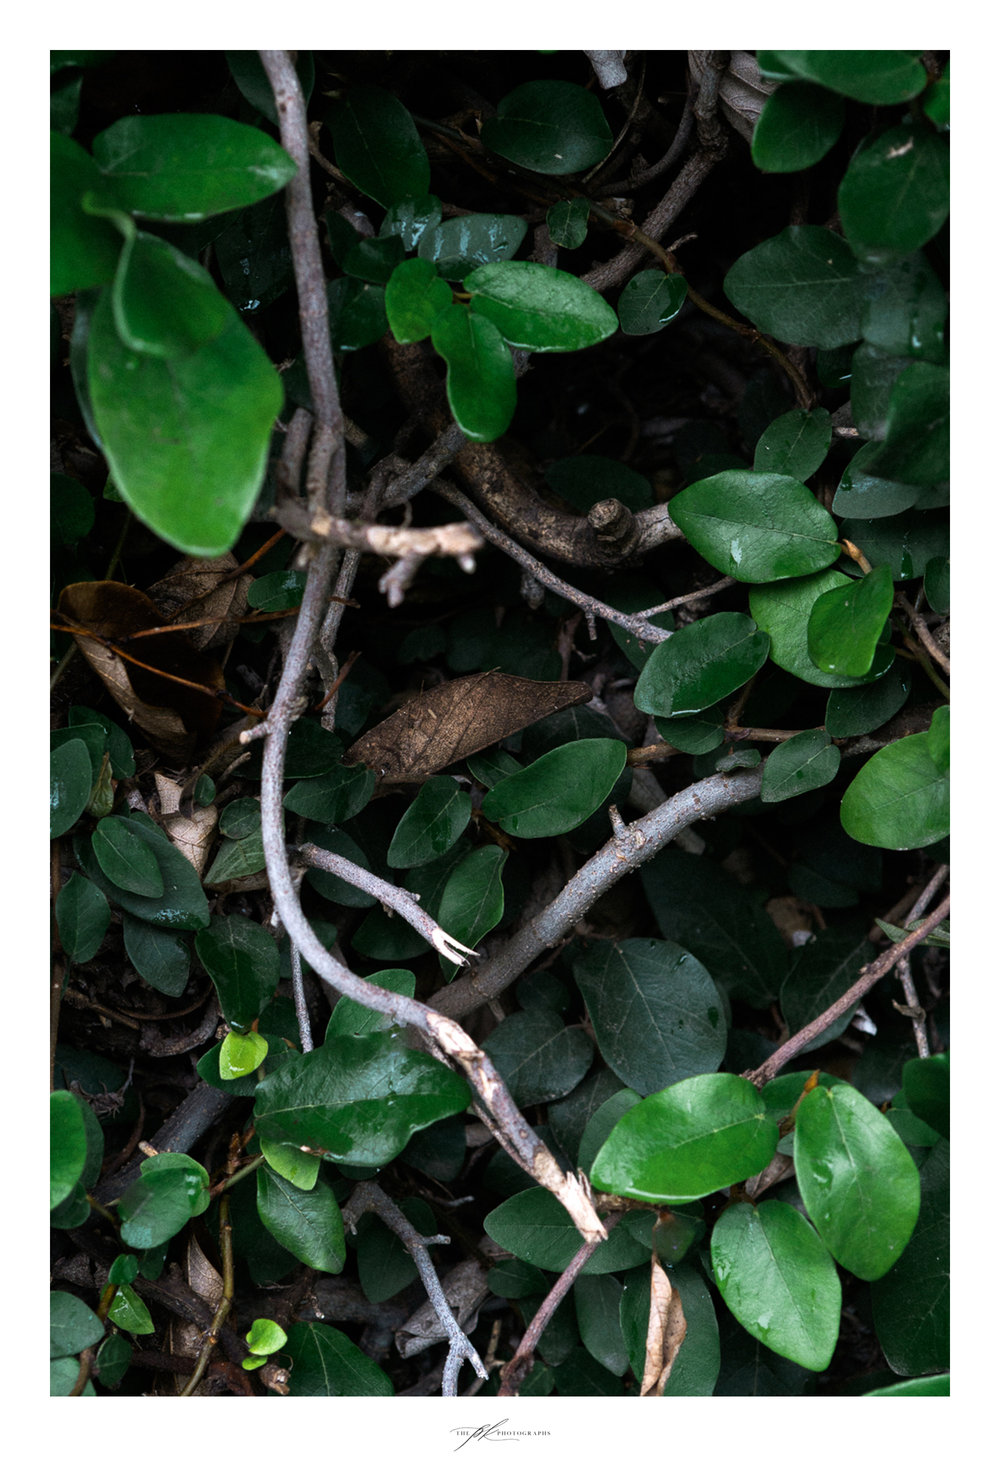 ivy-branches-leaves-up-close.jpg